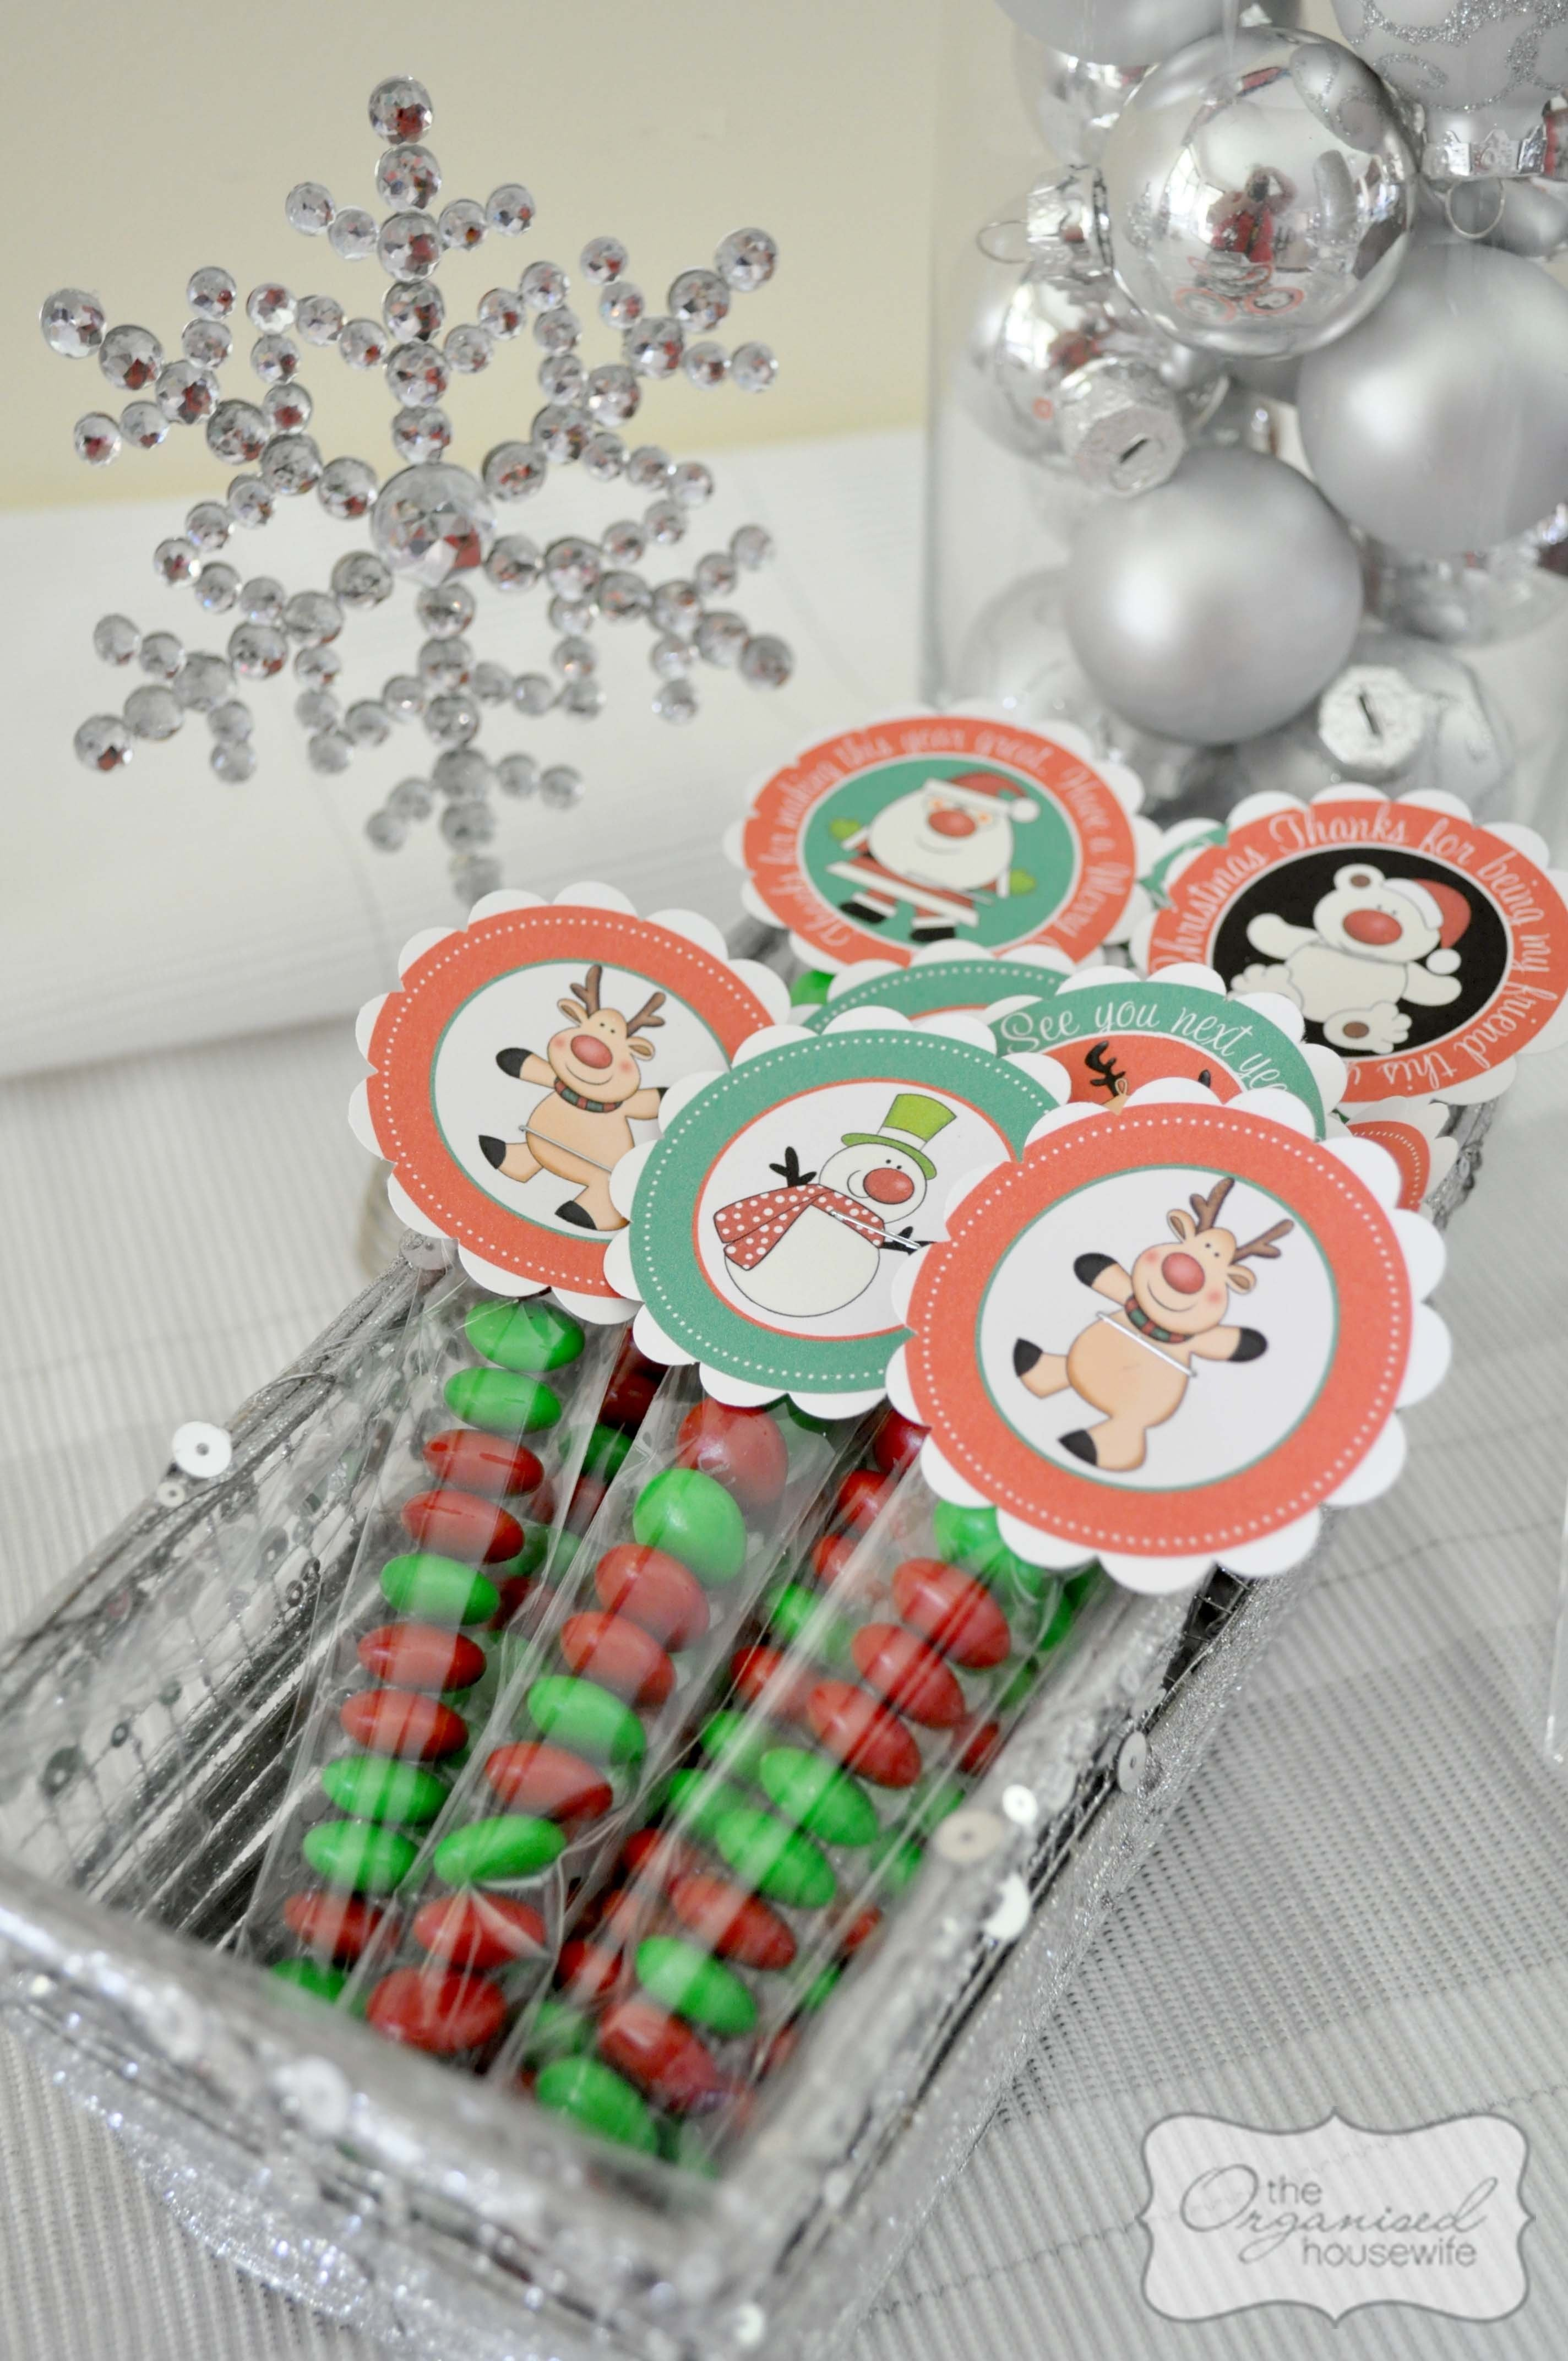 10 Awesome Small Gift Ideas For Friends christmas planning kids gifts to give their friends the organised 1